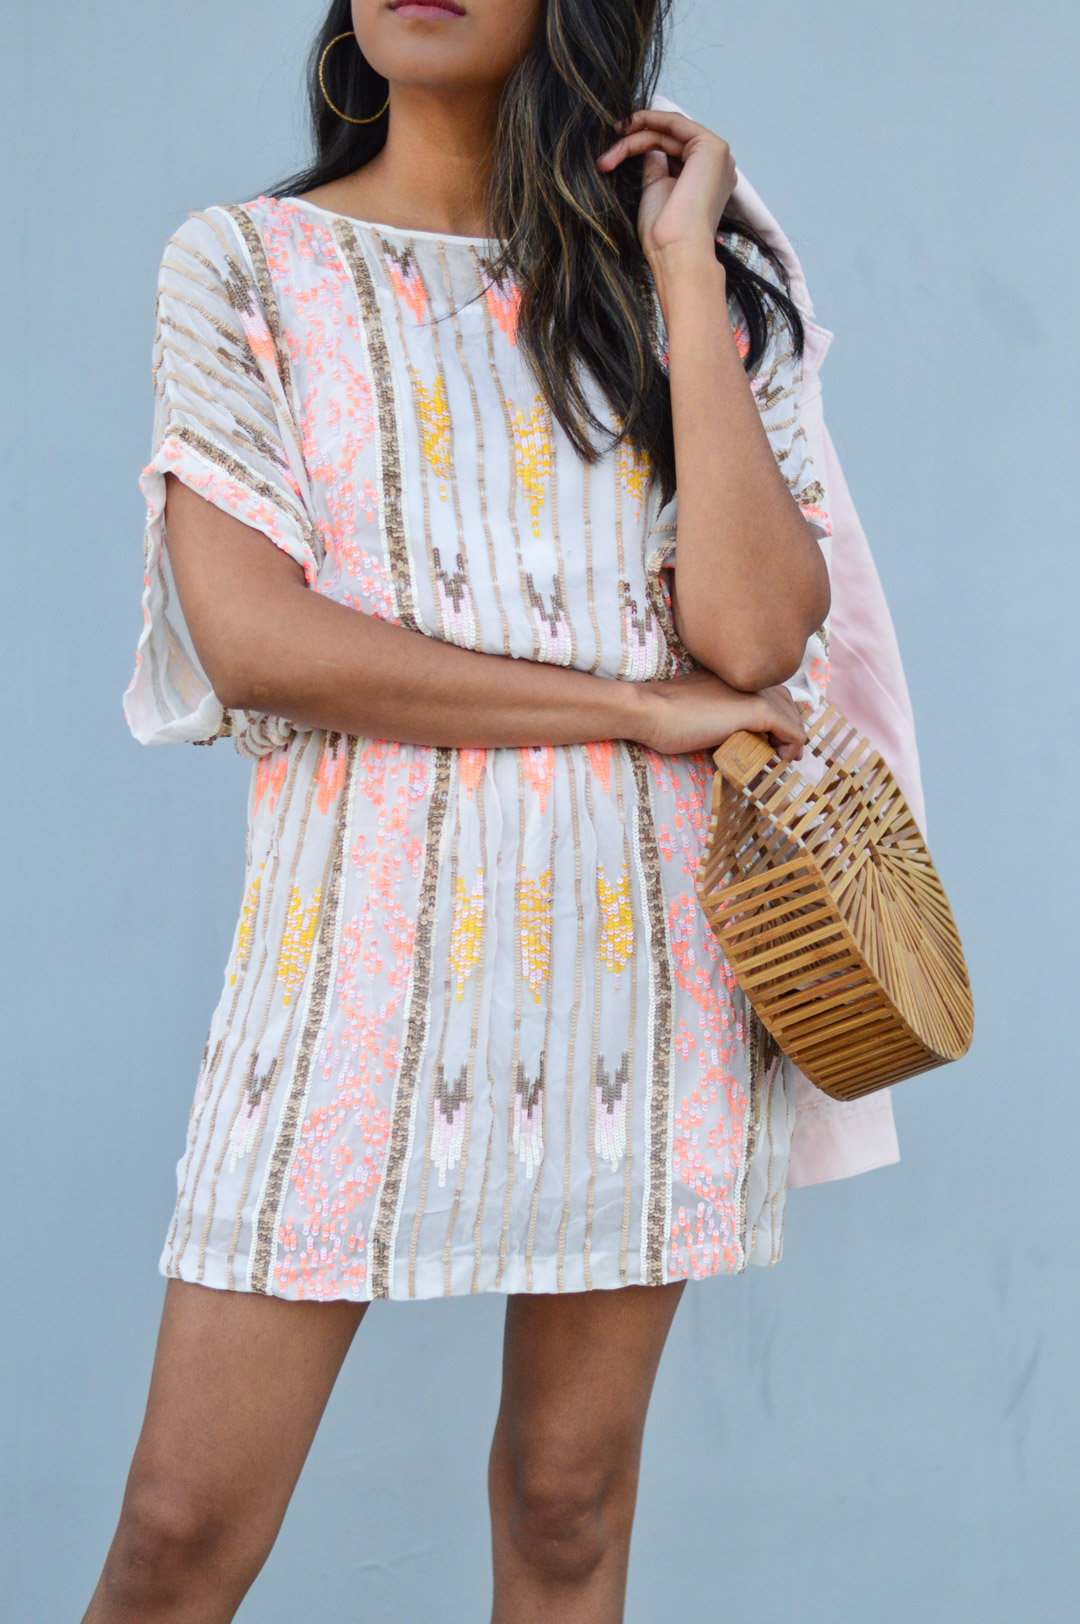 sequin-dress-daytime-pink-NYE-party-blogger-fashion 5